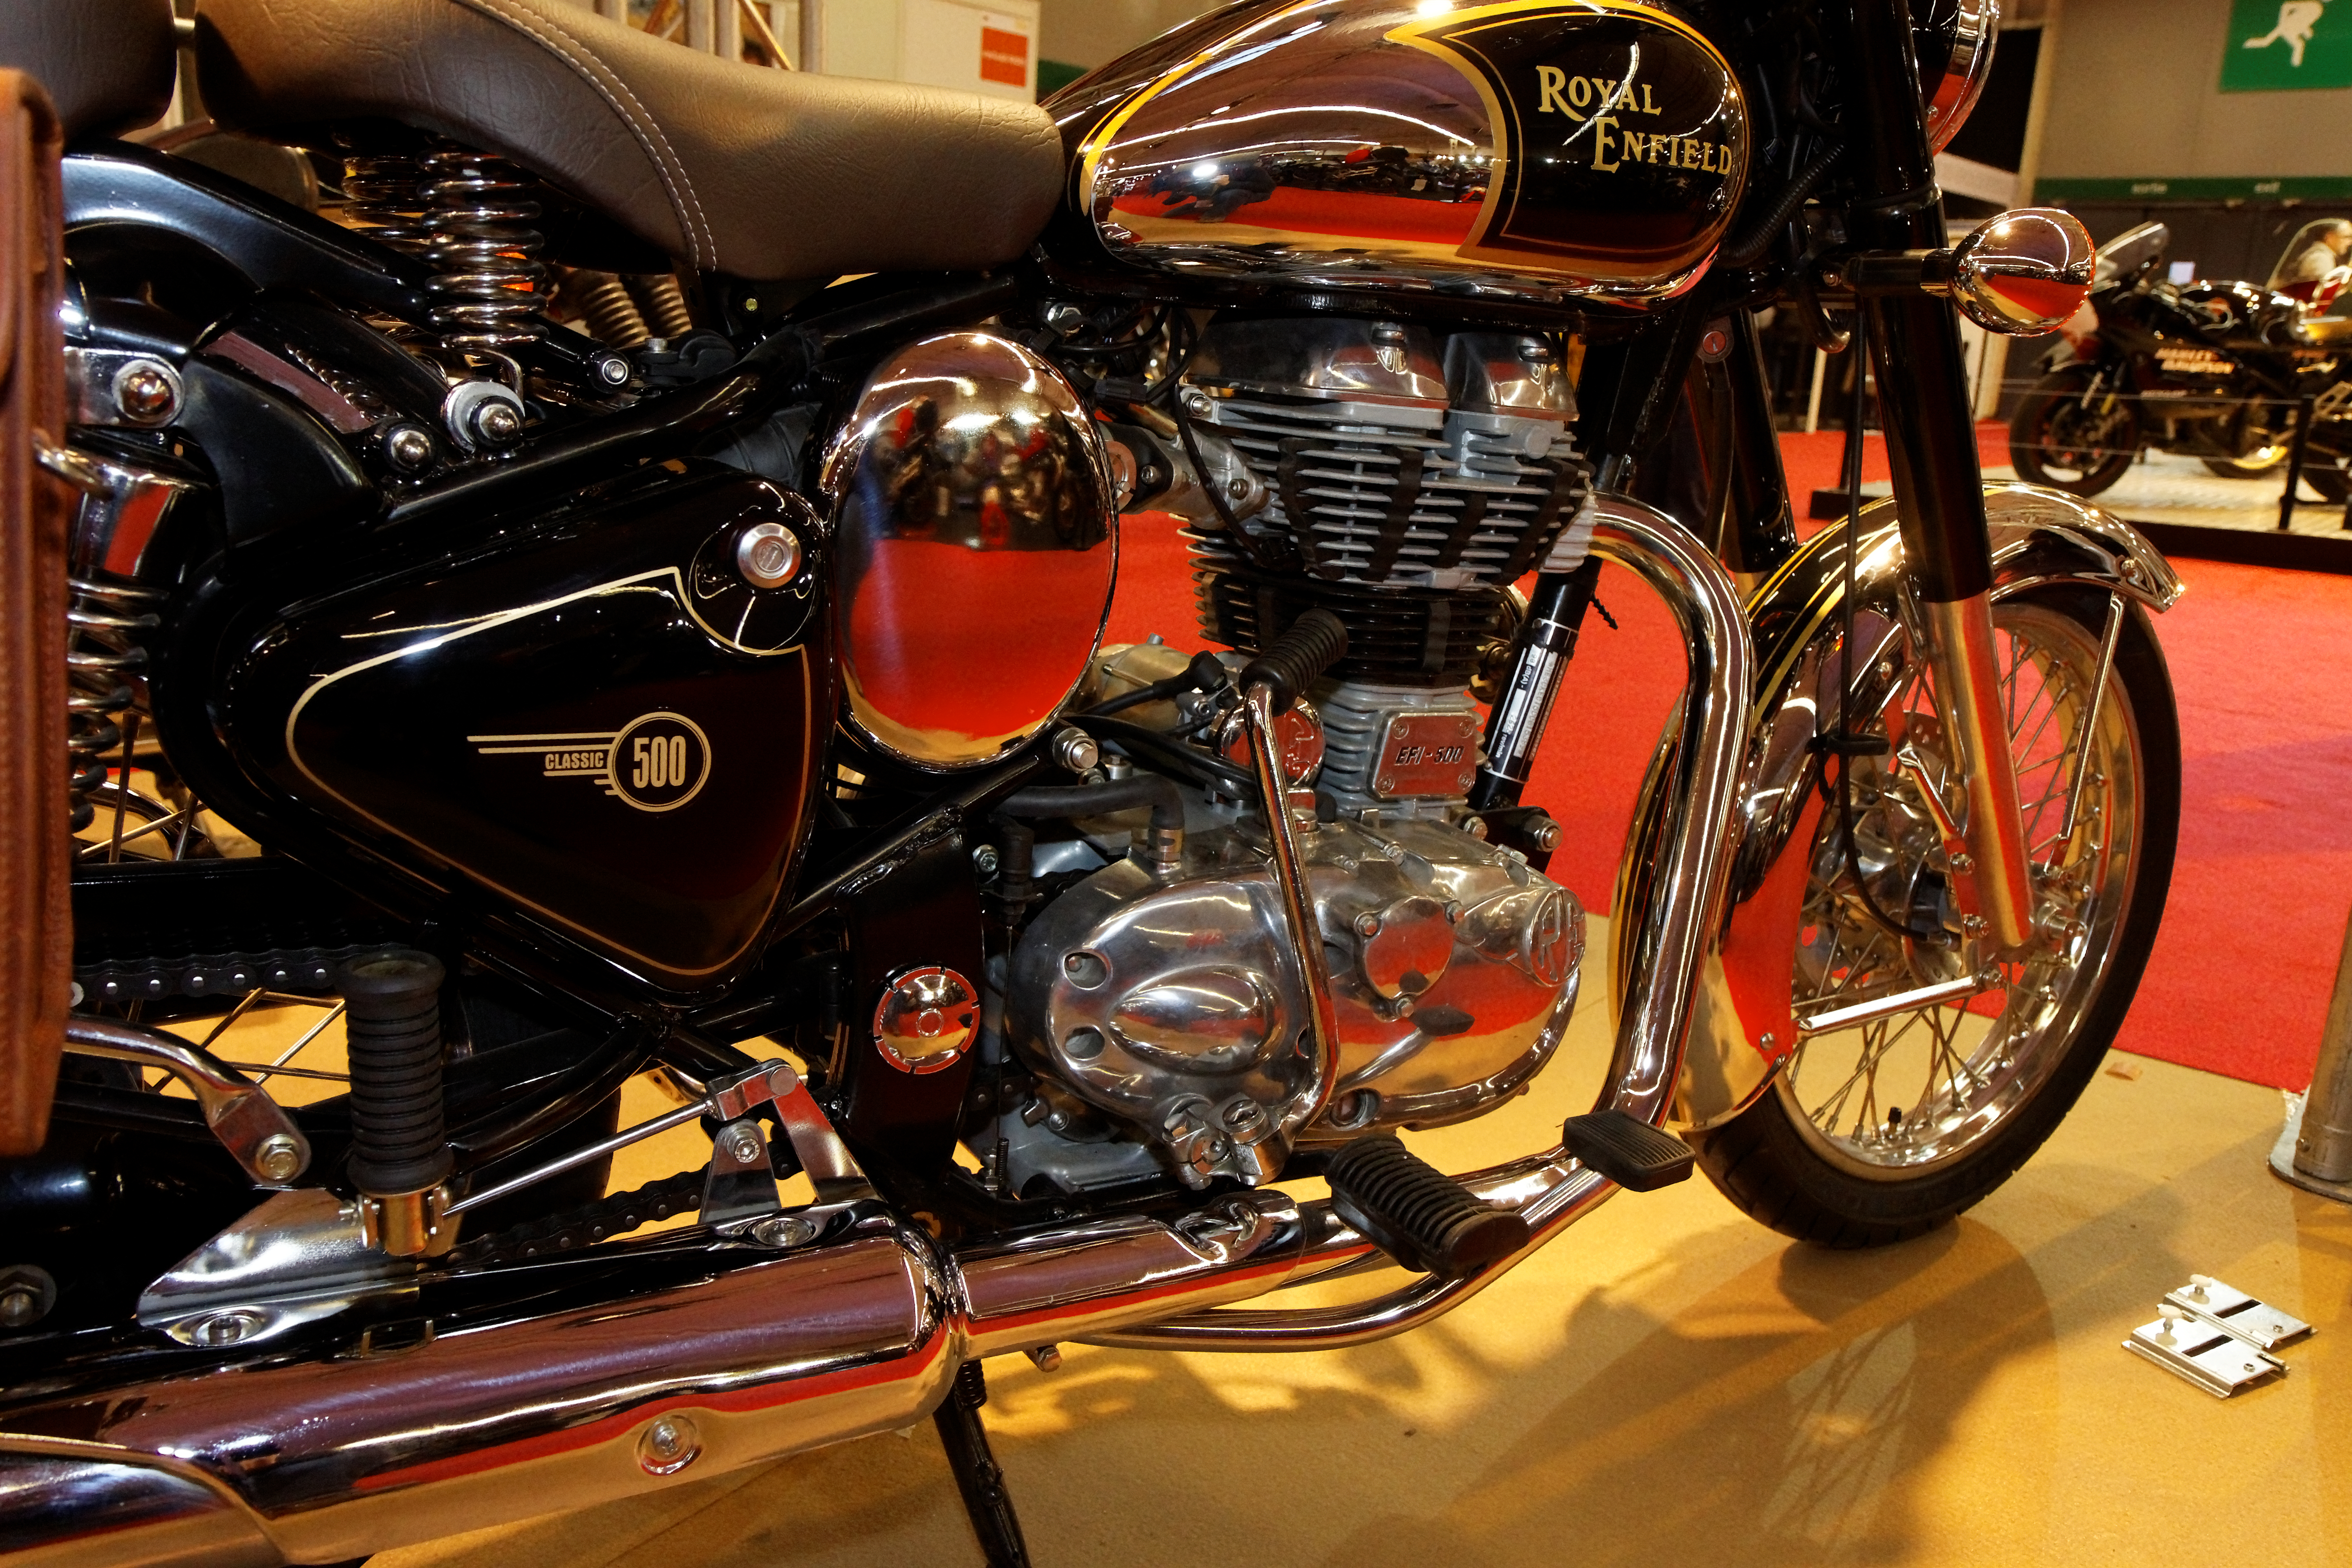 Royal Enfield Bullet 500 Classic 2011 images #123996